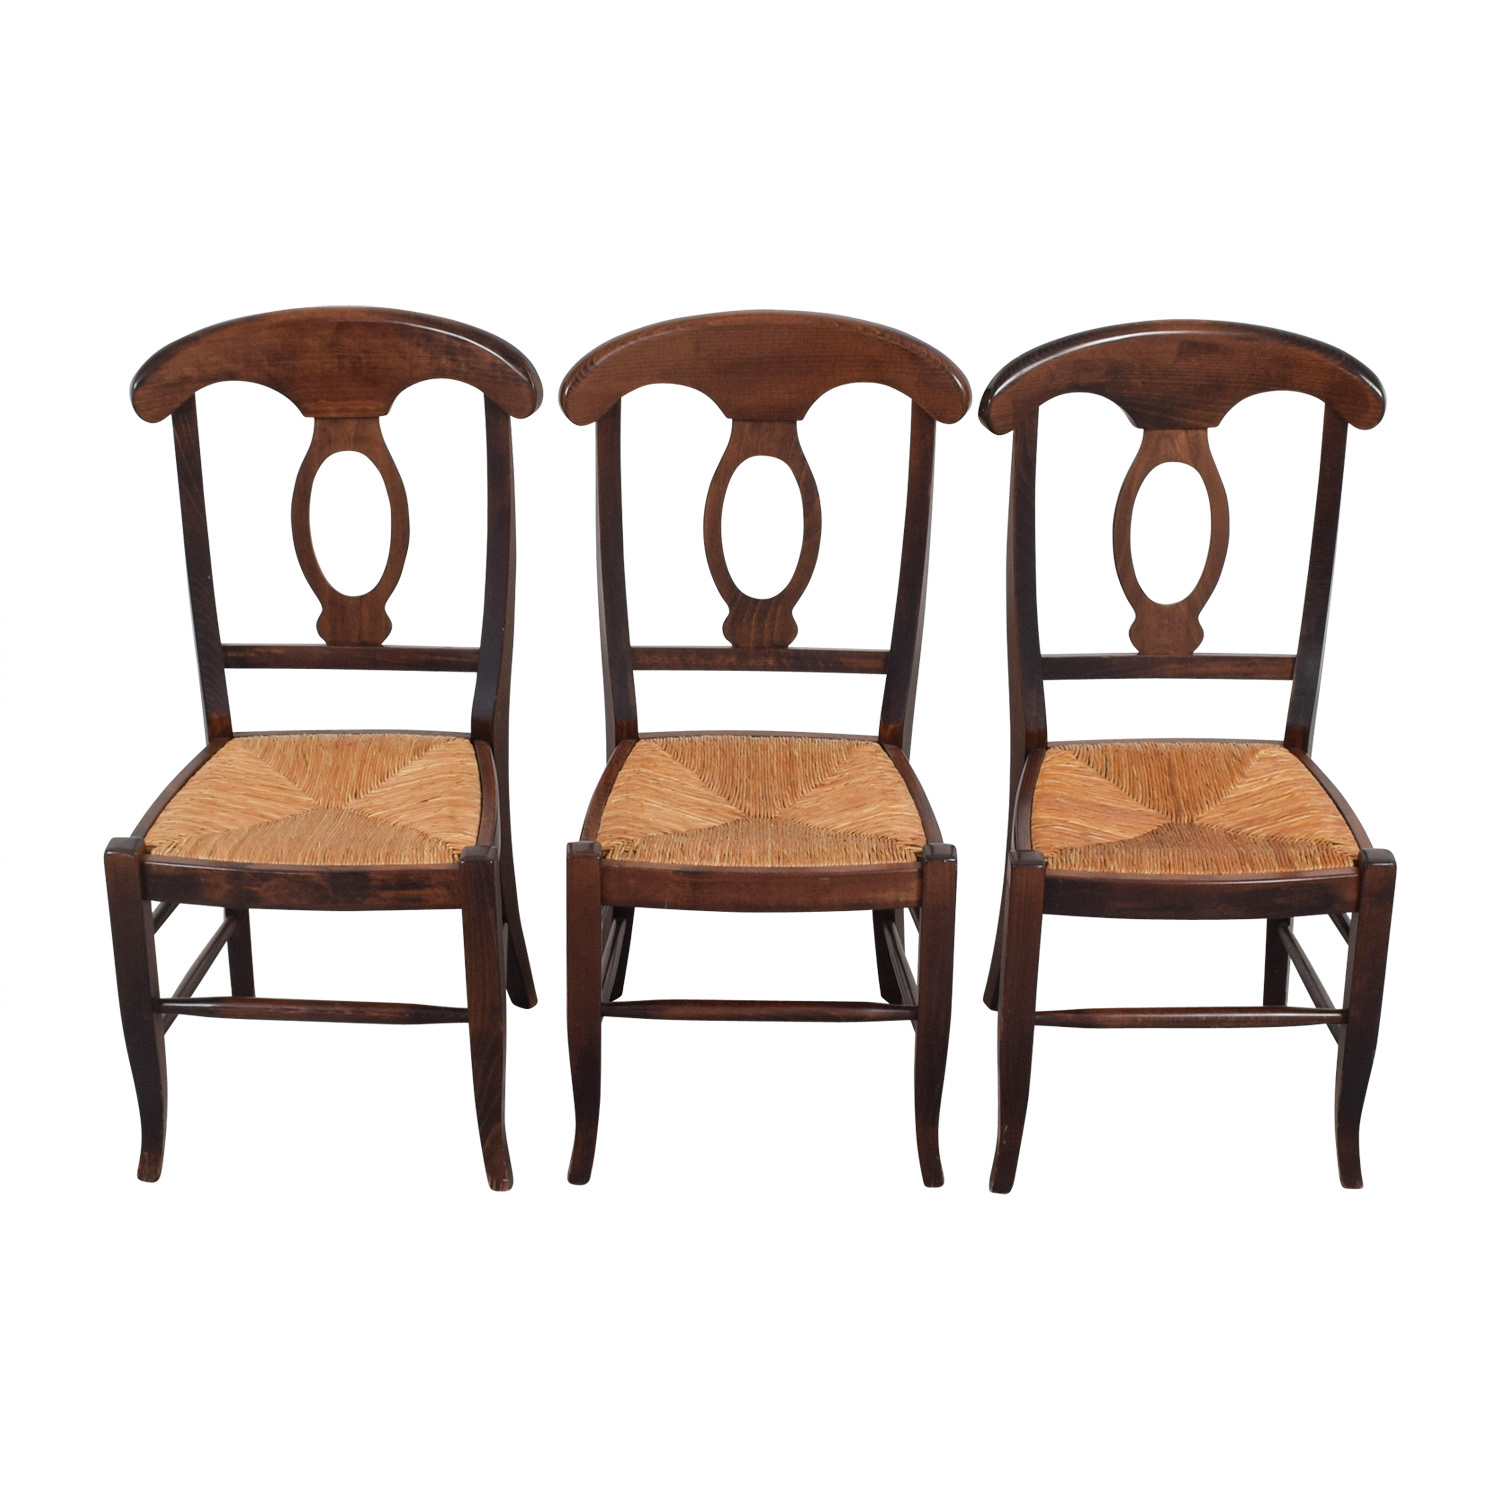 Pottery Barn Pottery Barn Napoleon Chairs / Chairs